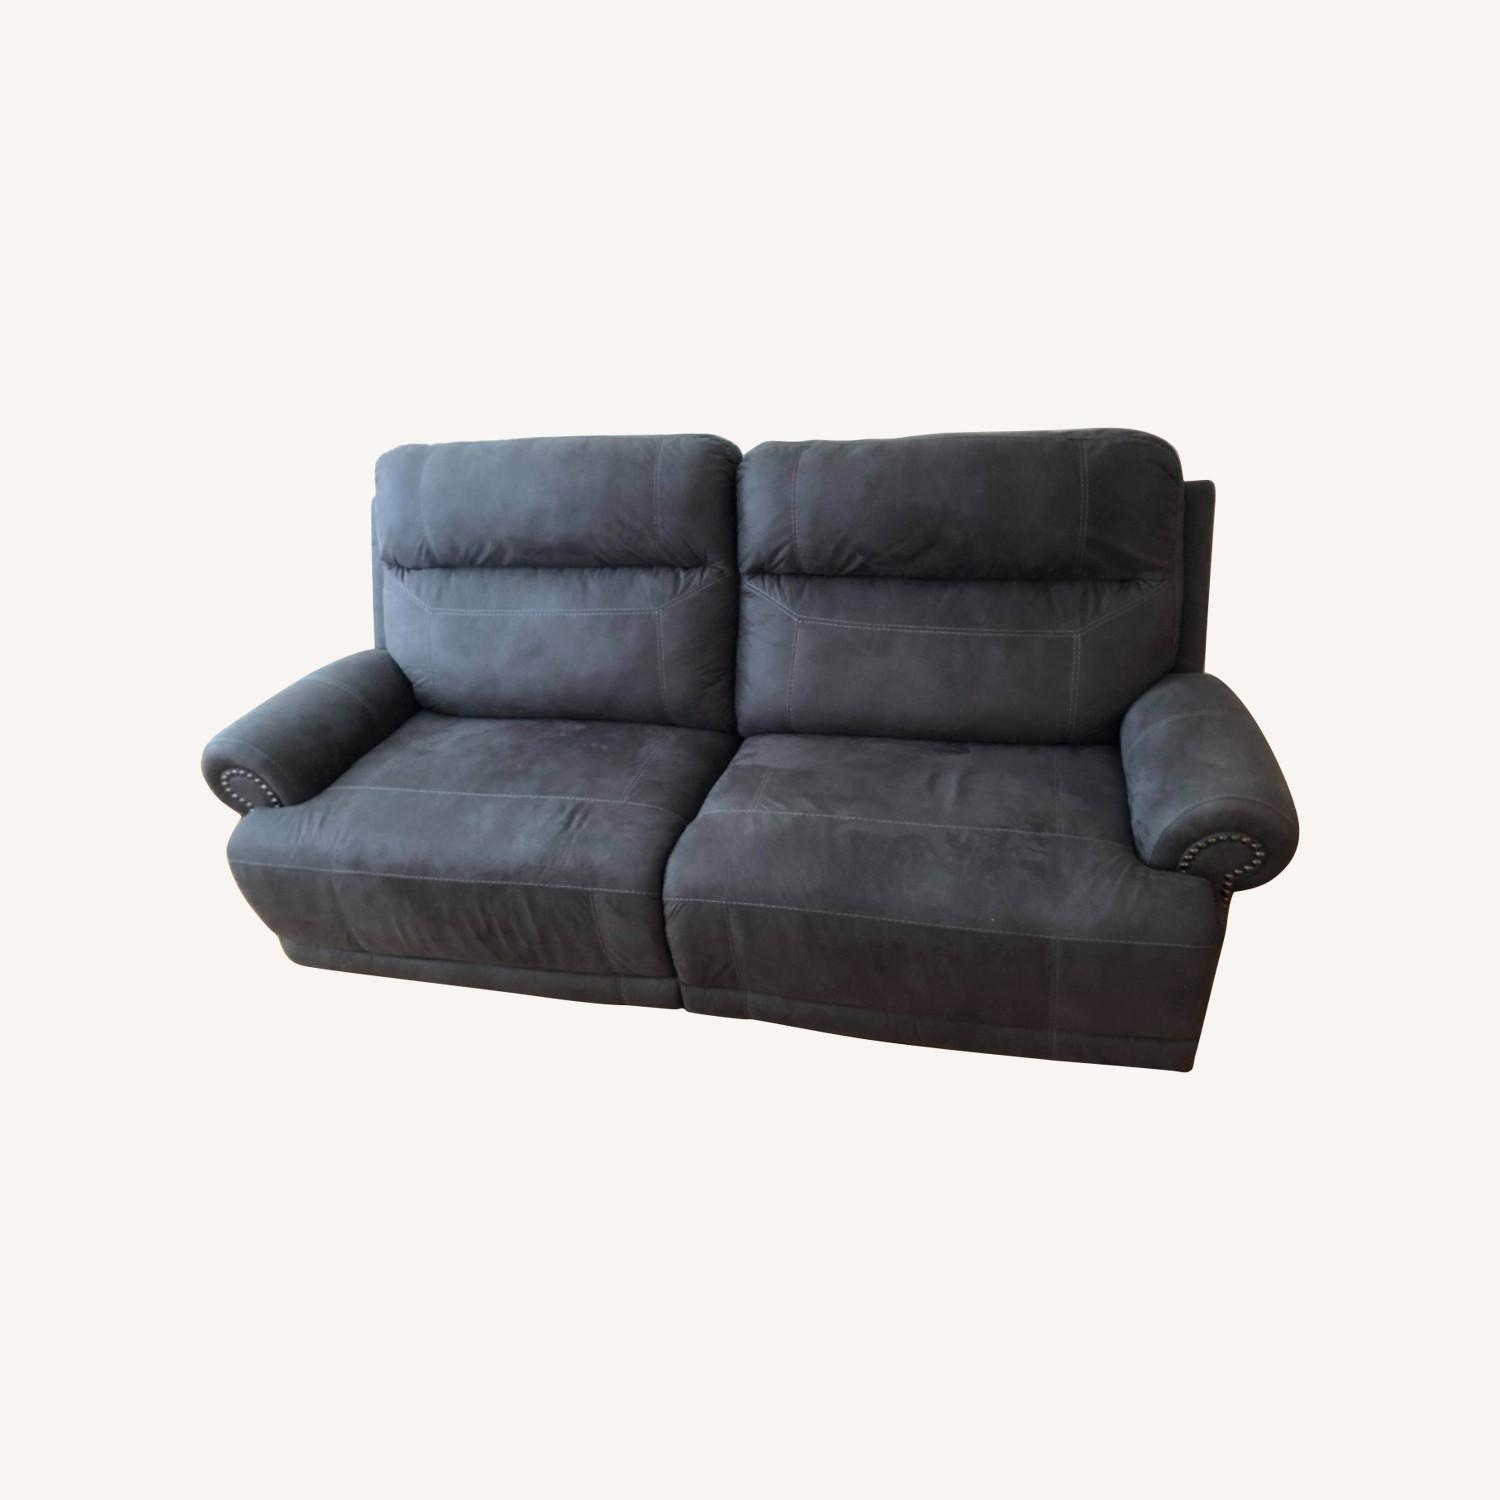 Wanek Furniture Company Electric Recliner Sofa - image-0